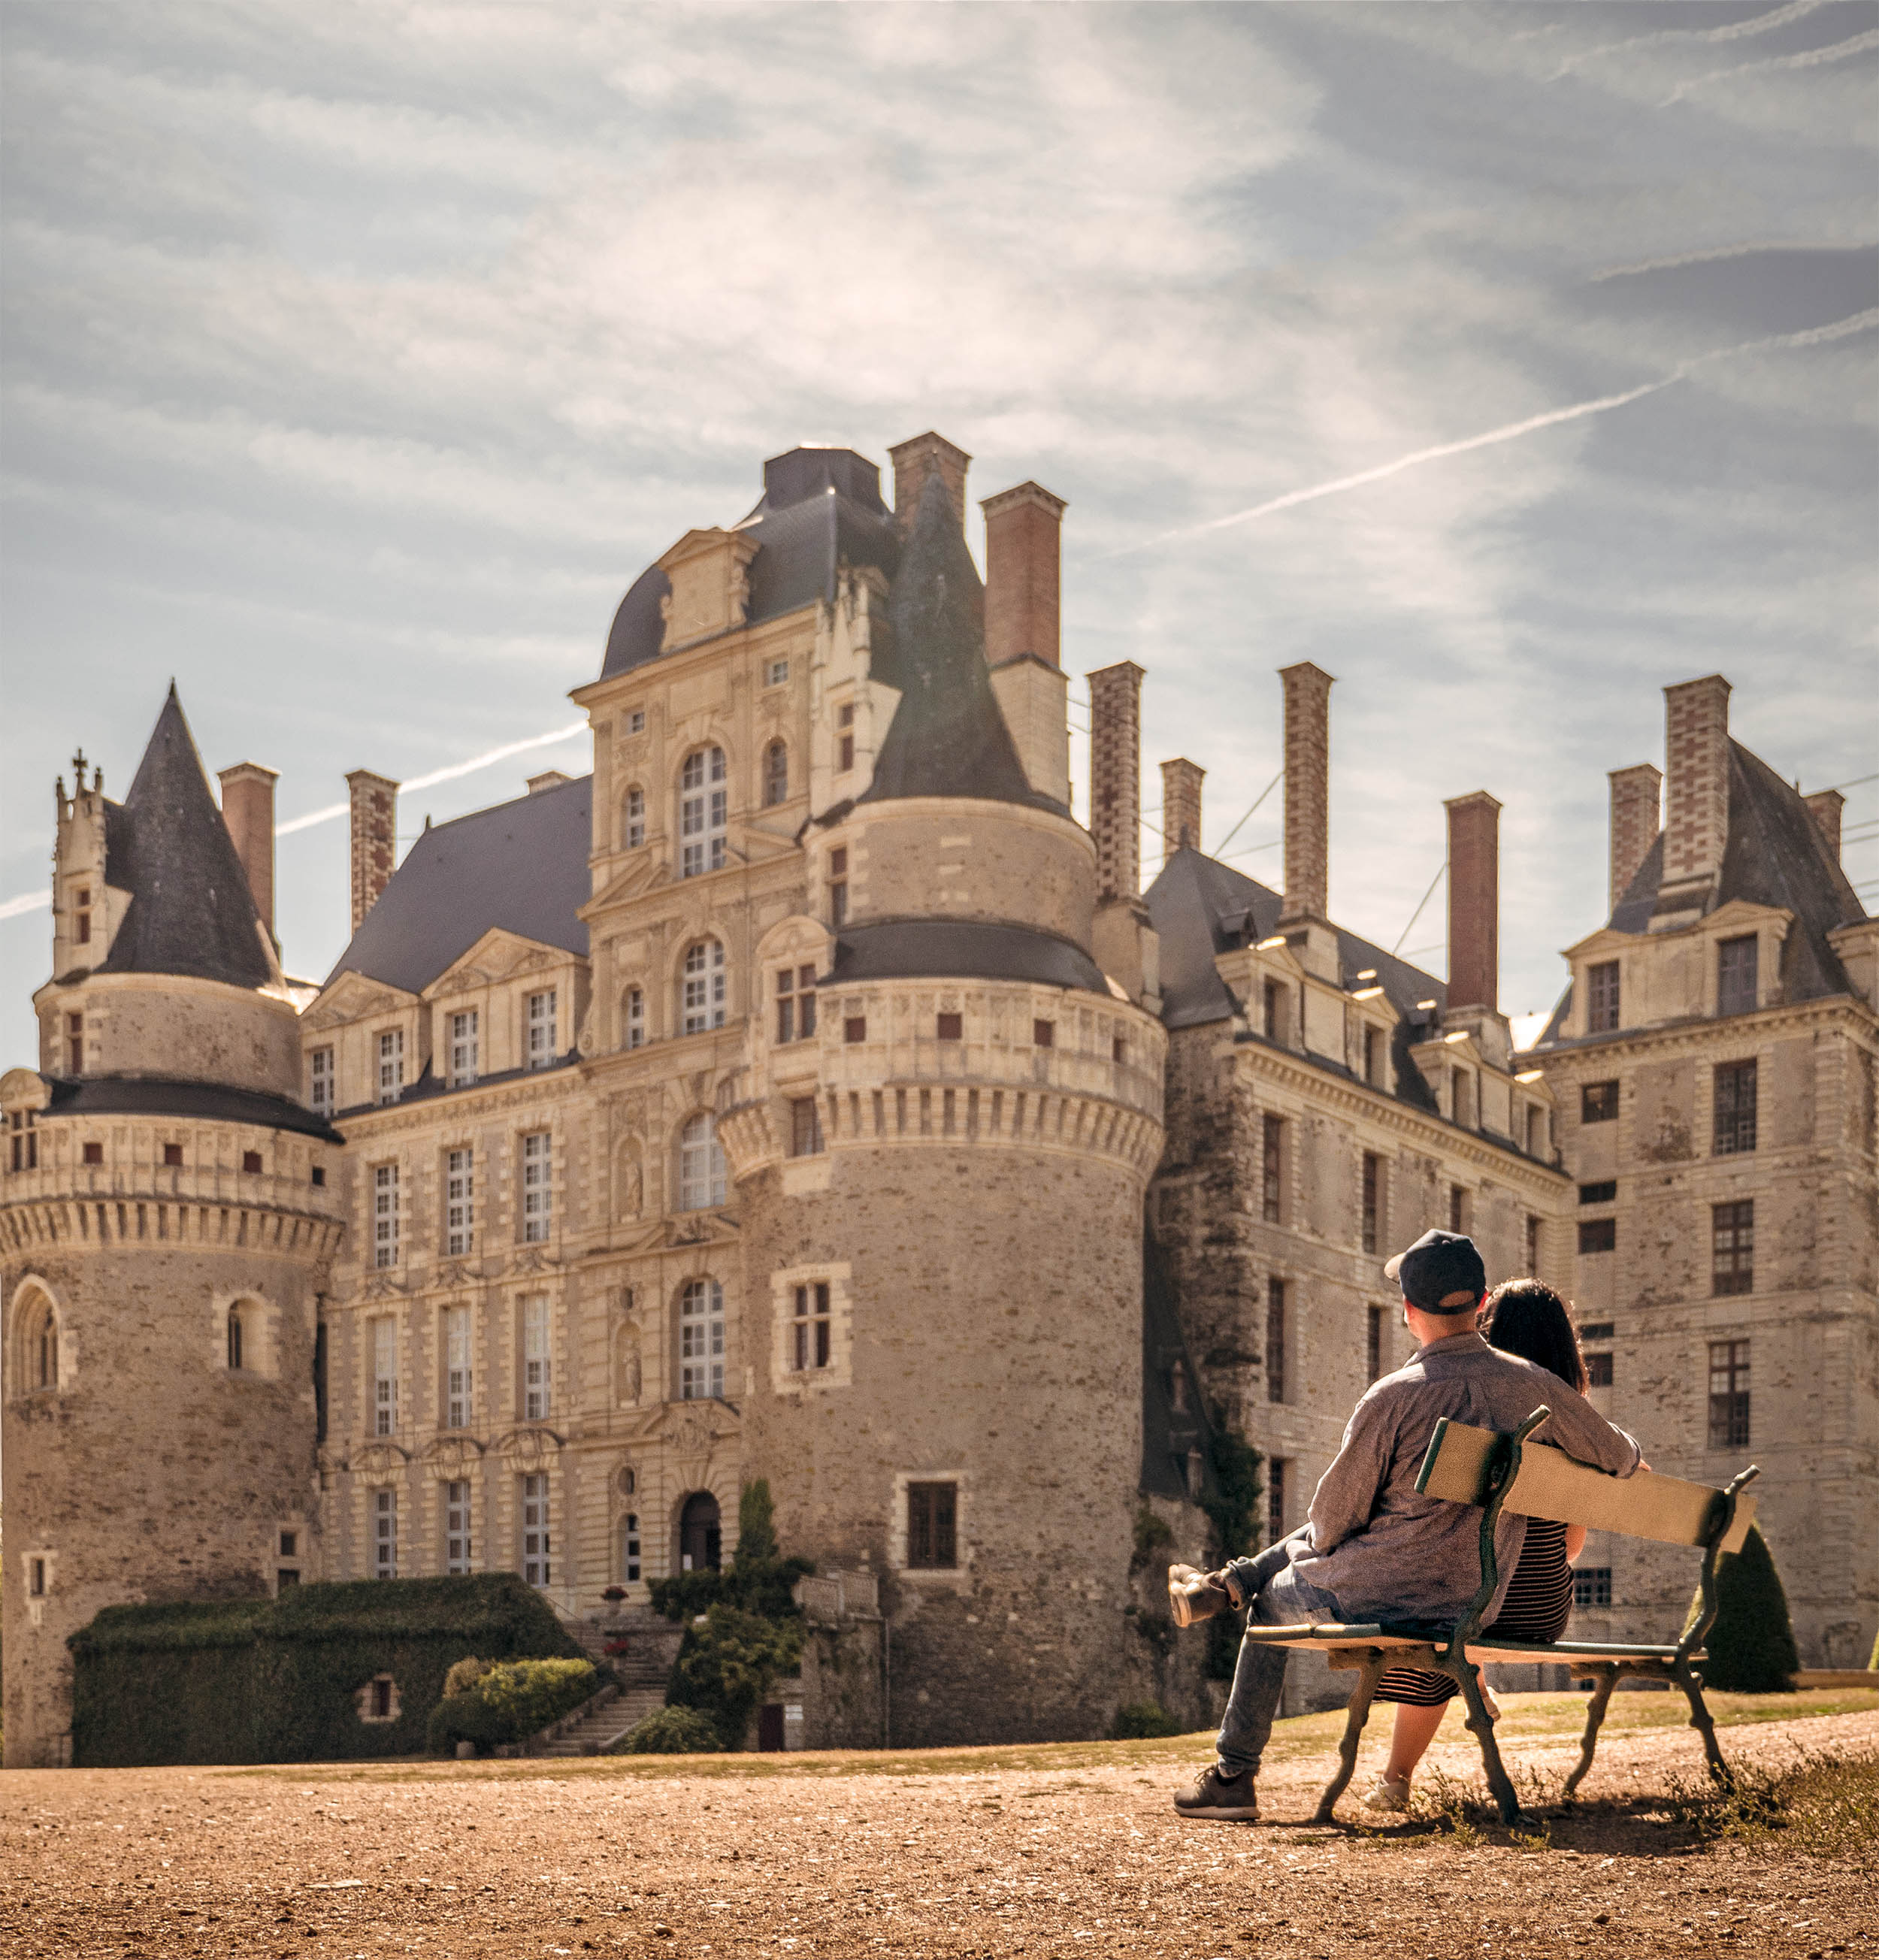 Chateau de Brissac - Loire Valley France